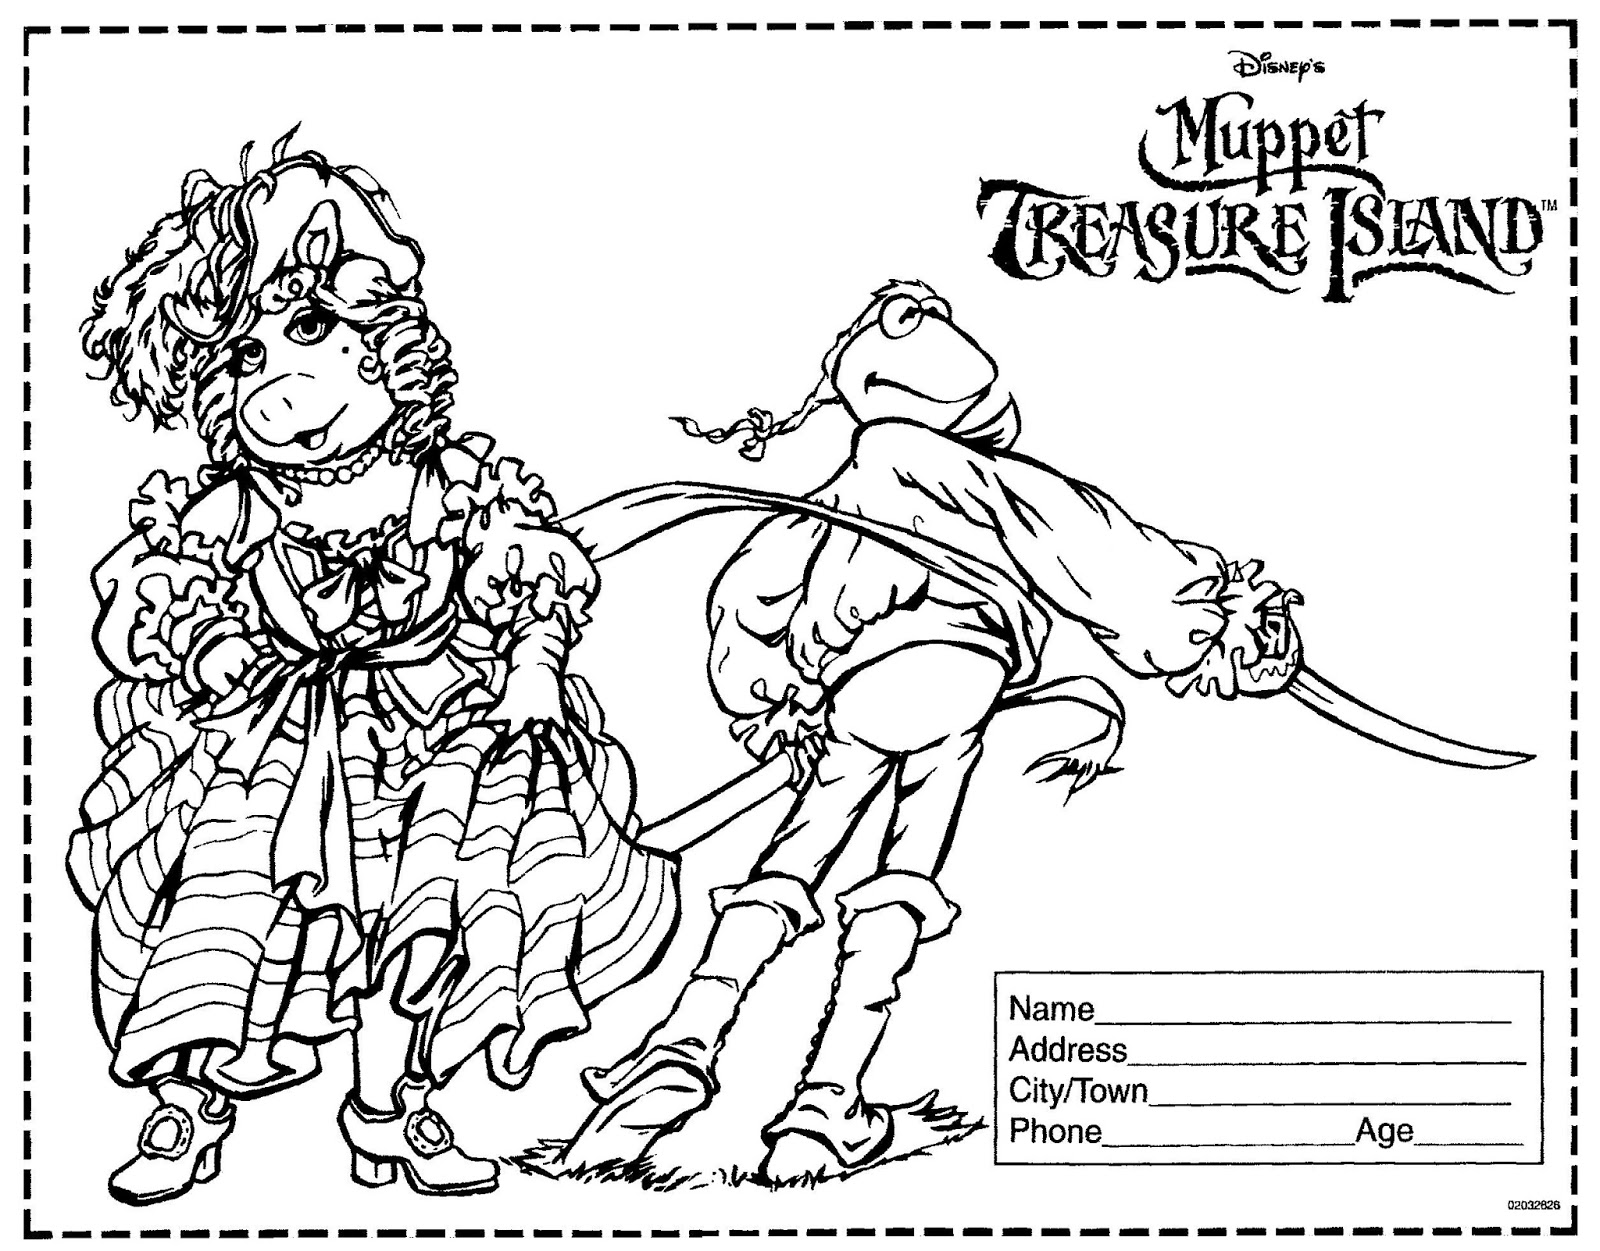 mostly paper dolls too muppet treasure island movie coloring contest